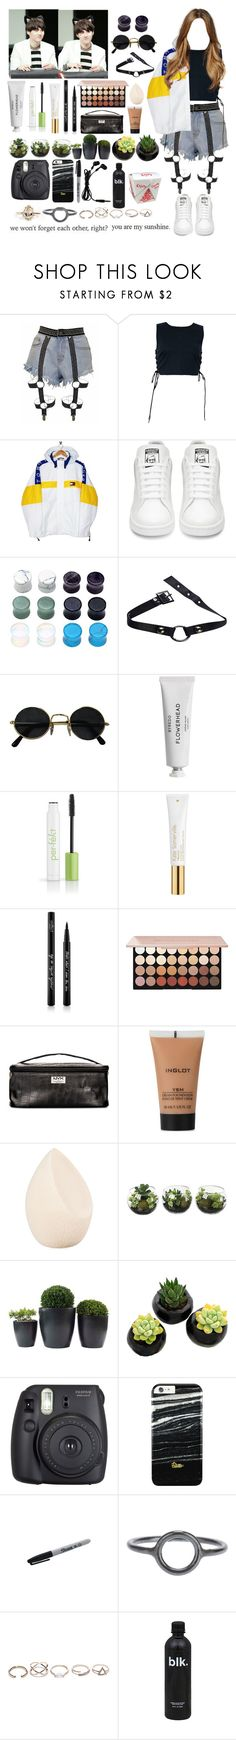 """Fan sign with yoongi  (Boyfriend)"" by vbril ❤ liked on Polyvore featuring Tommy Hilfiger, GET LOST, Byredo, Per-fékt Beauty, Kate Somerville, Eyeko, NYX, Inglot, Christian Dior and Fuji"